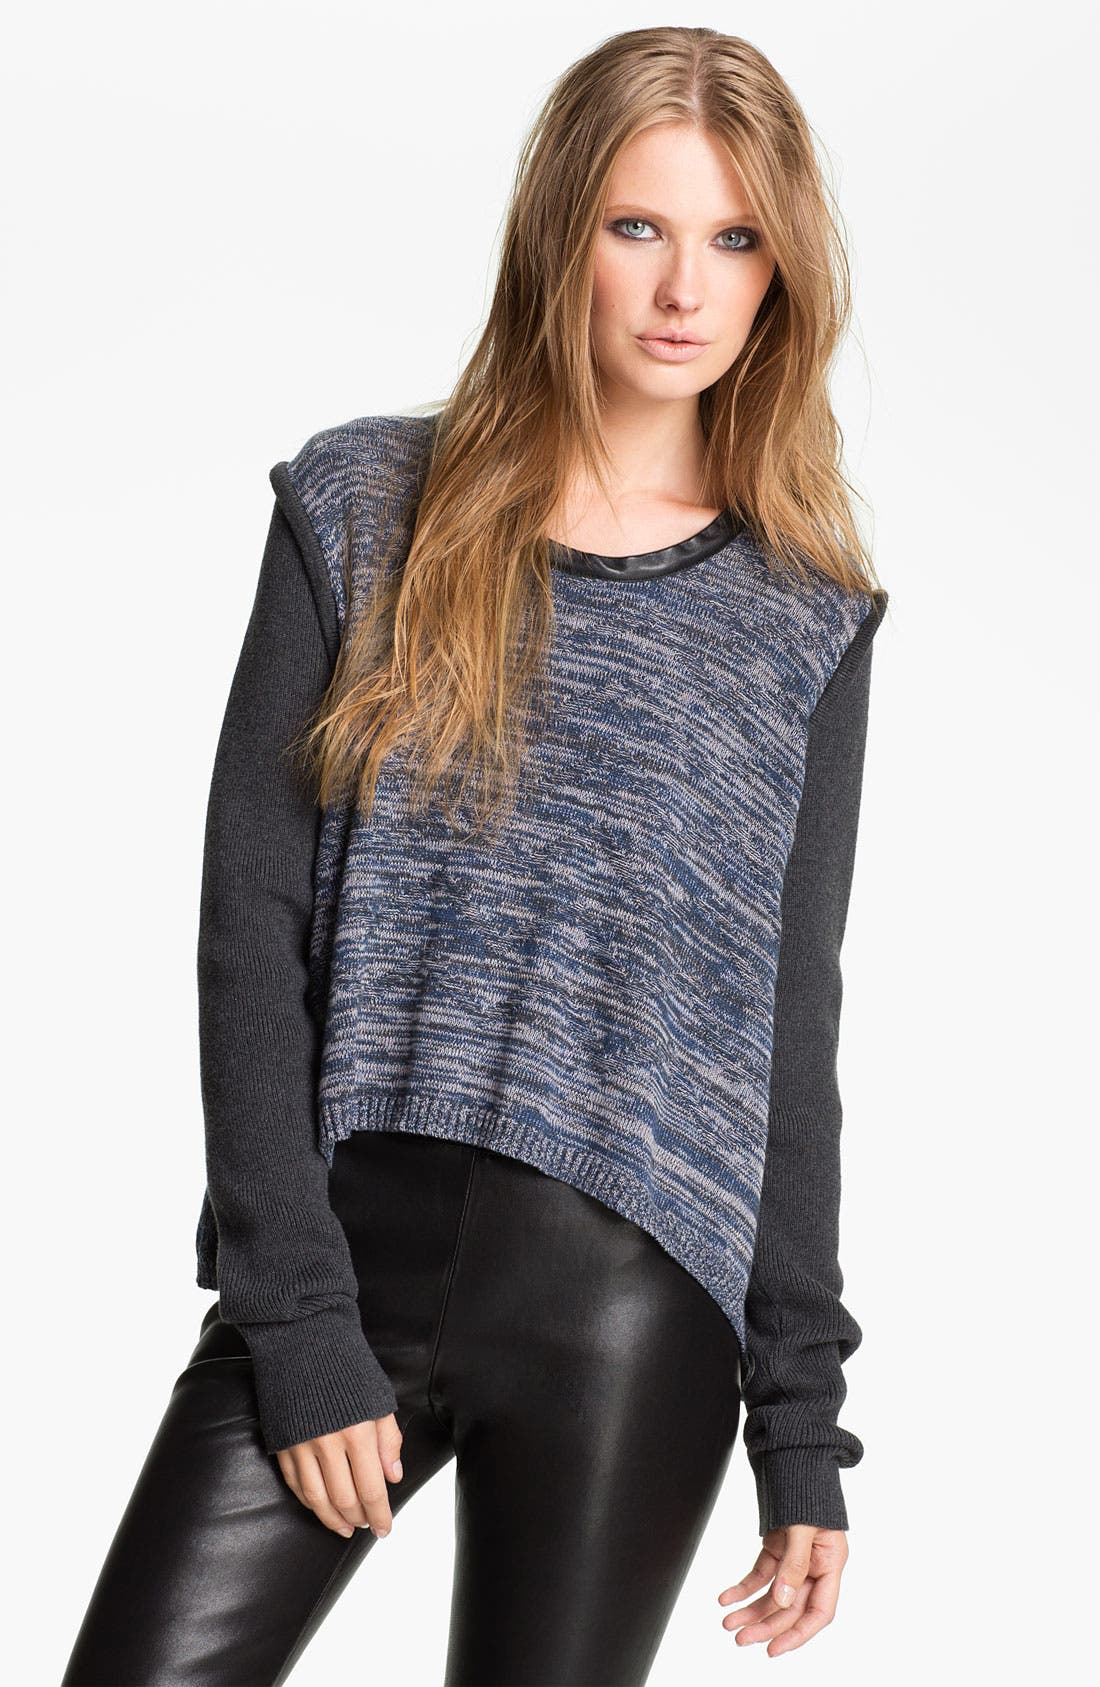 Main Image - Cut25 Marled Knit Top